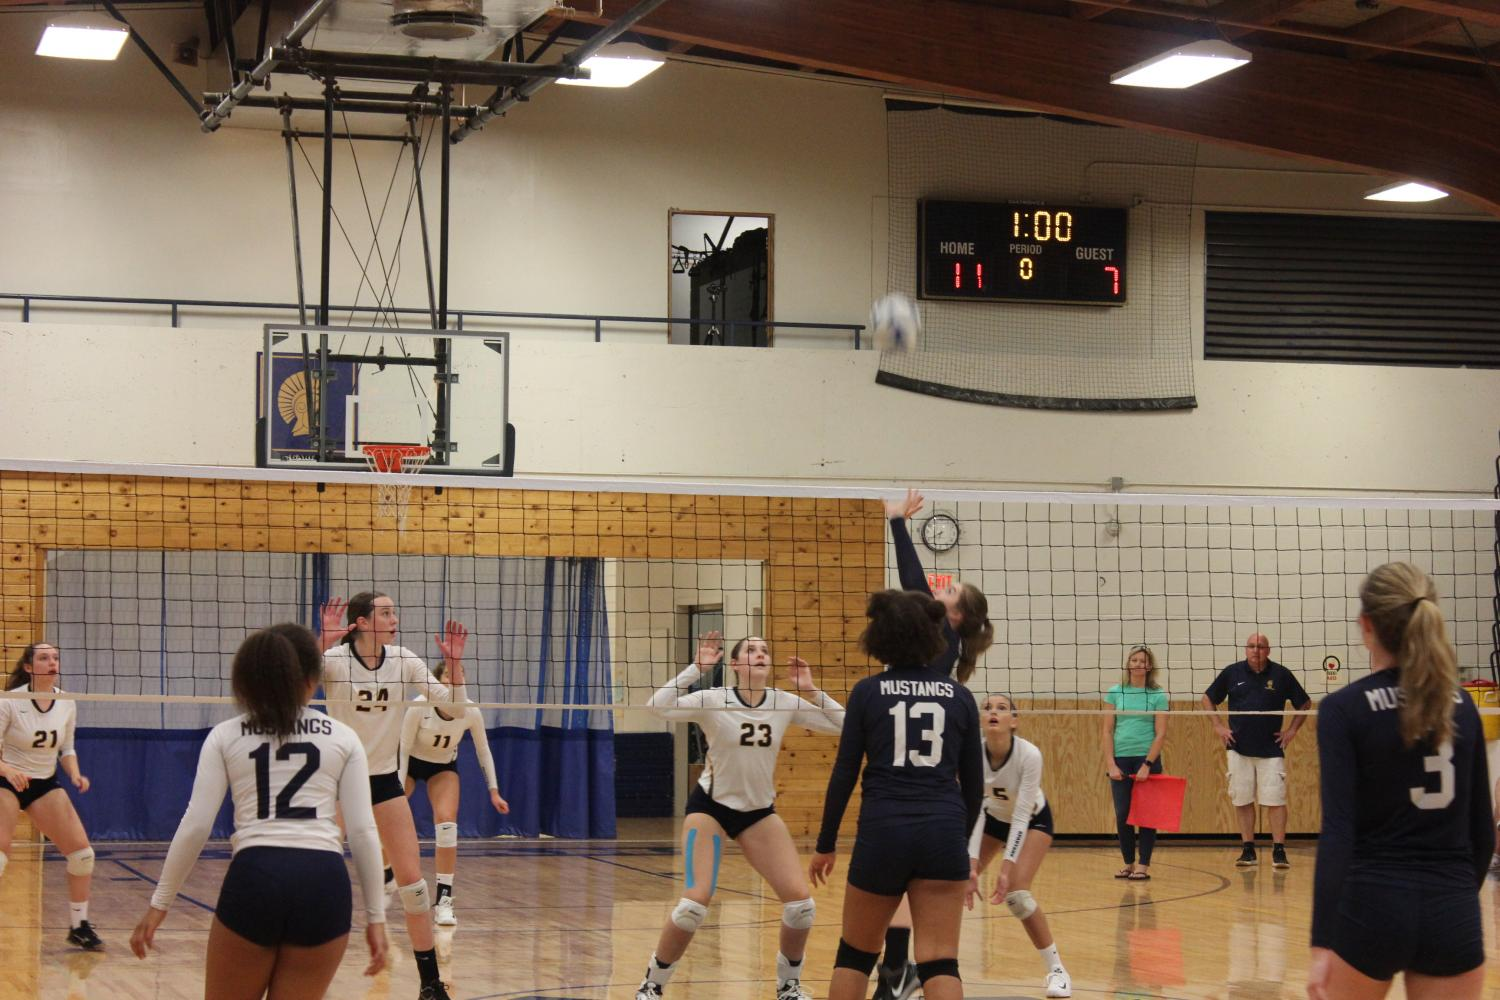 TEAMWORK. Players defend a spike from the Mustangs.